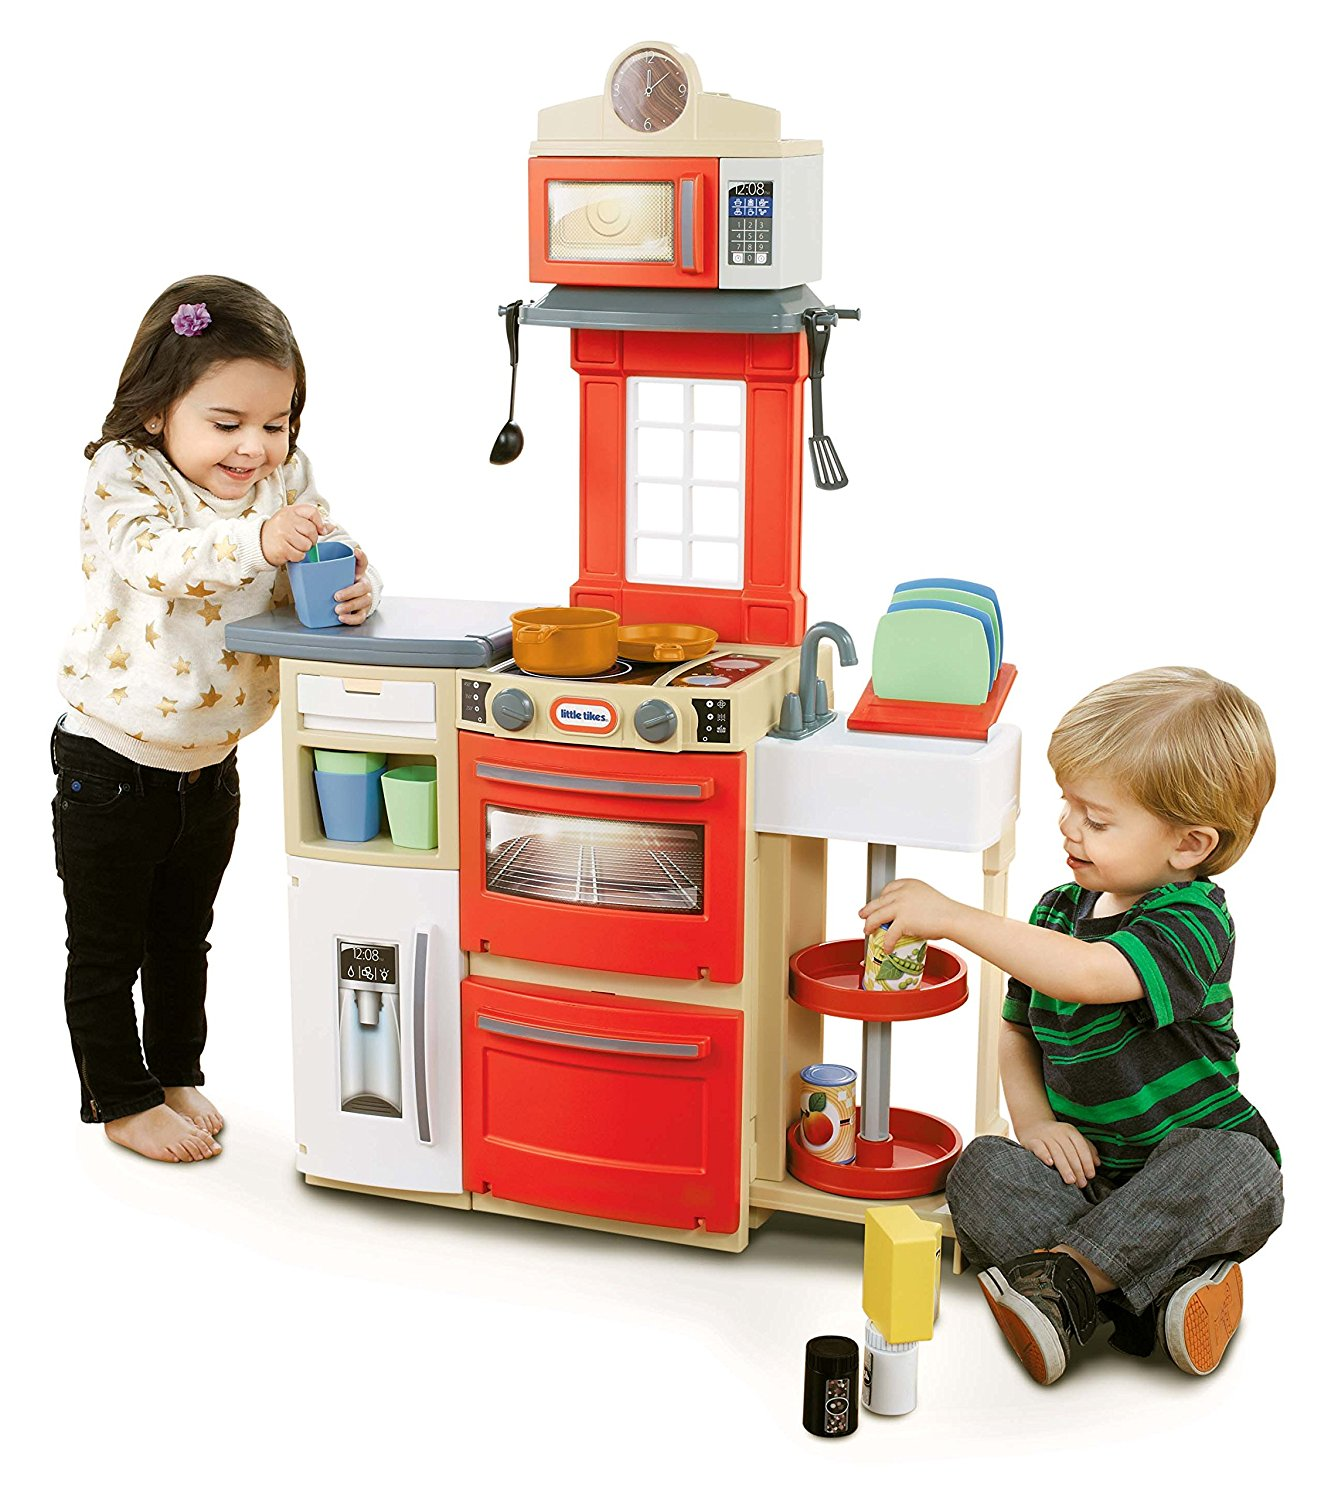 Cook 'n Store Kitchen Playset Red, Ship from America by